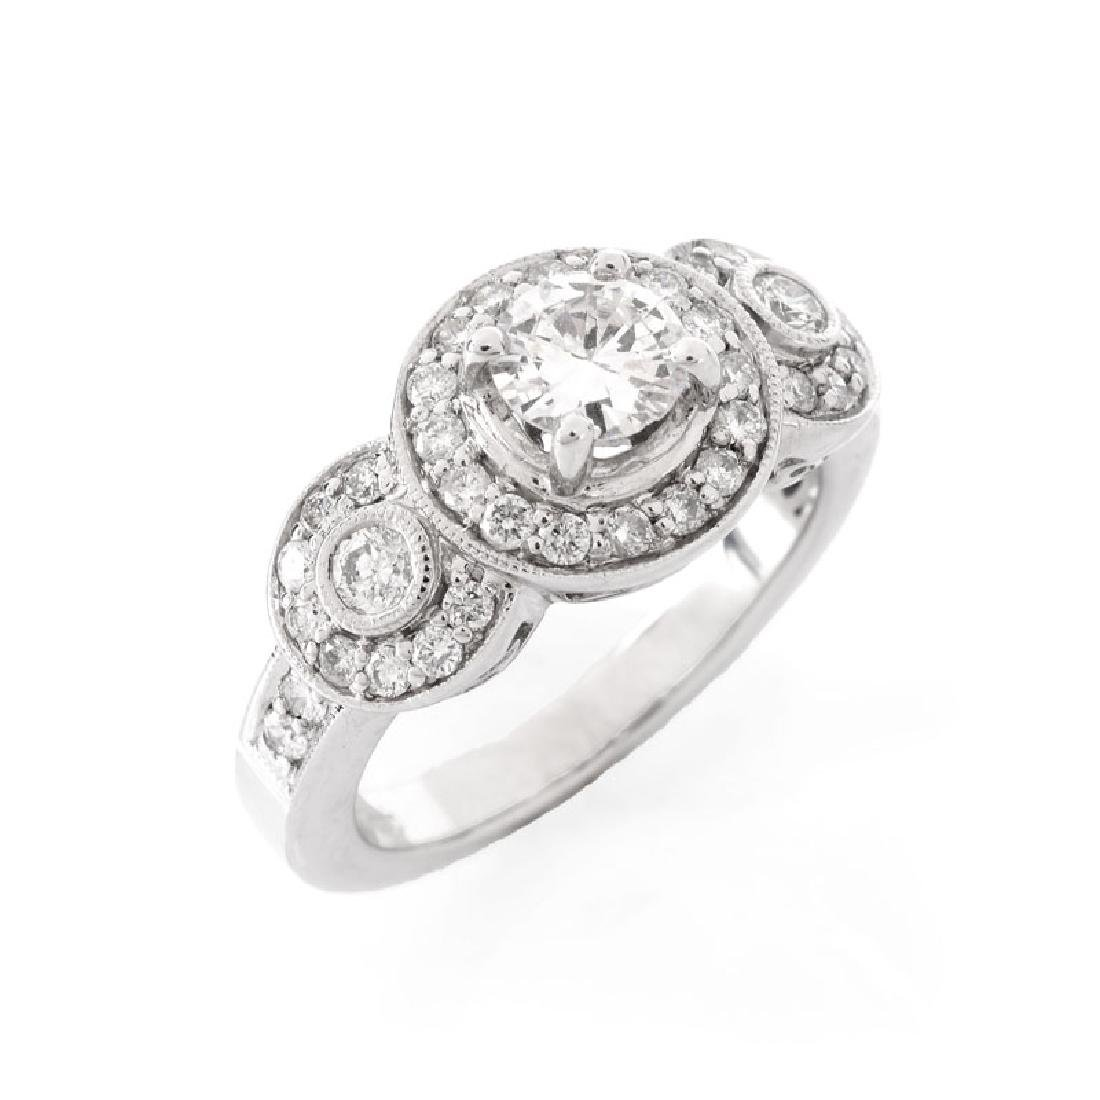 Approx. 1.40 Carat Diamond and 18 Karat White Gold